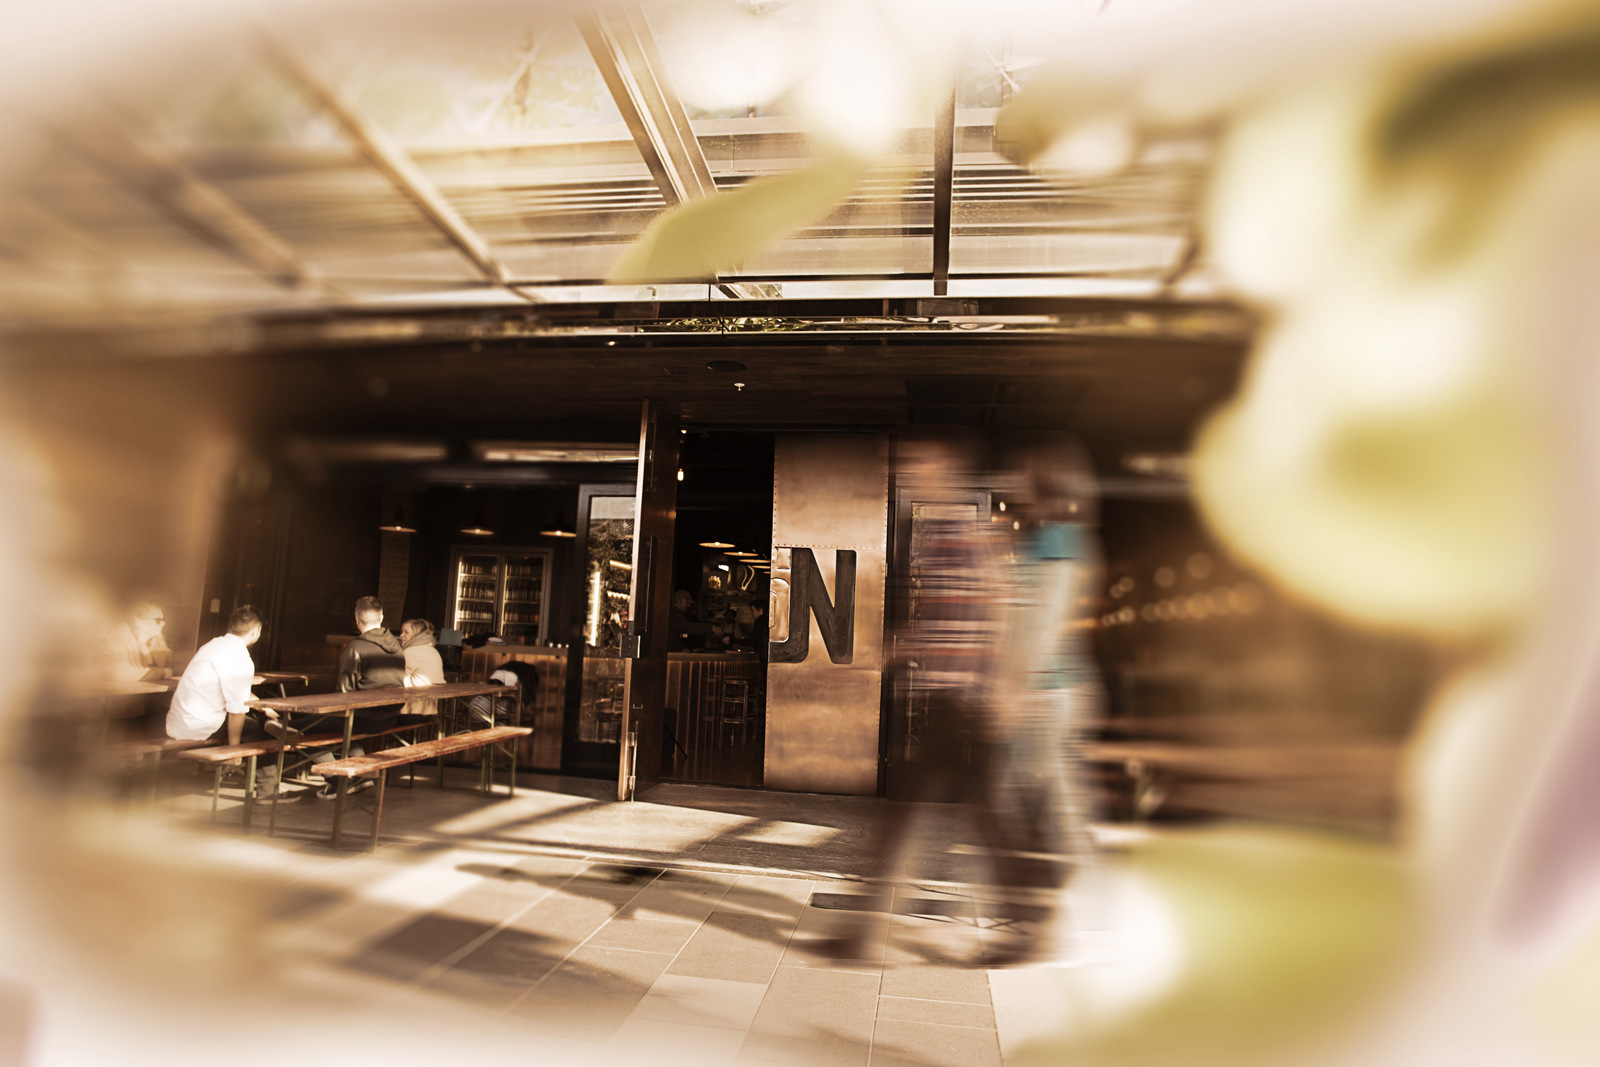 Sixteen TUN – Craft Beer Bar in Auckland